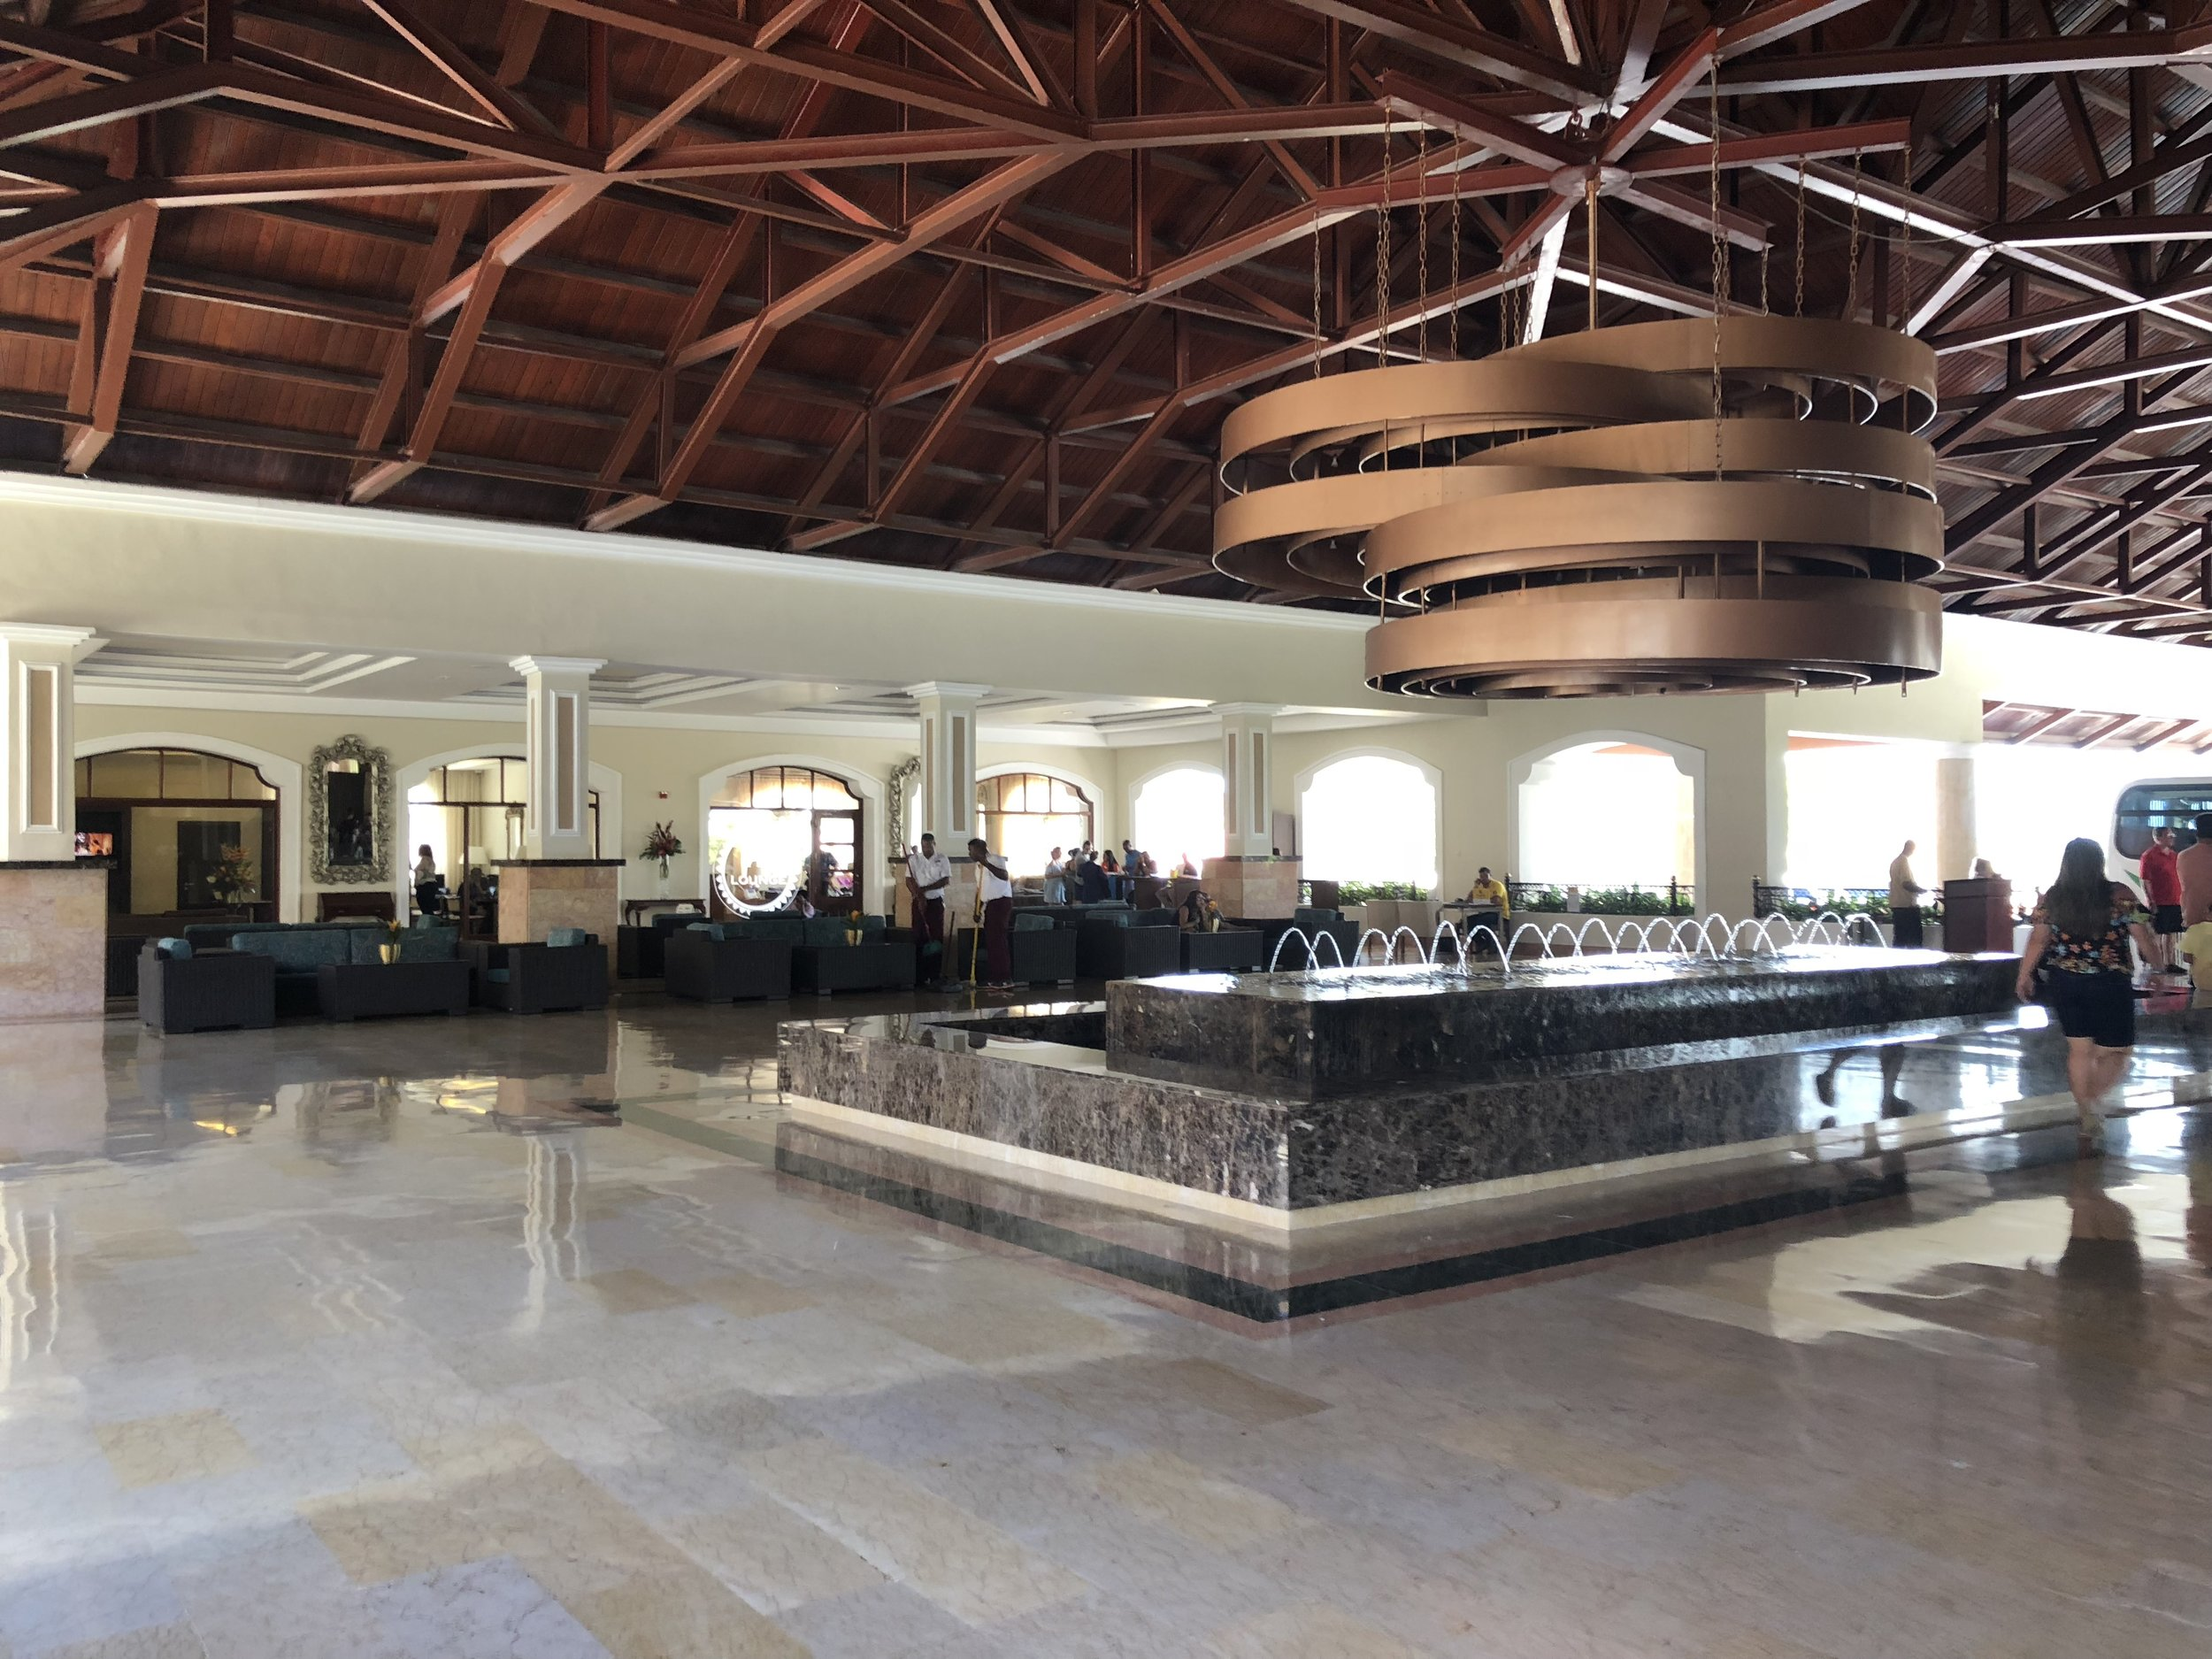 The right view of the upper main lobby.